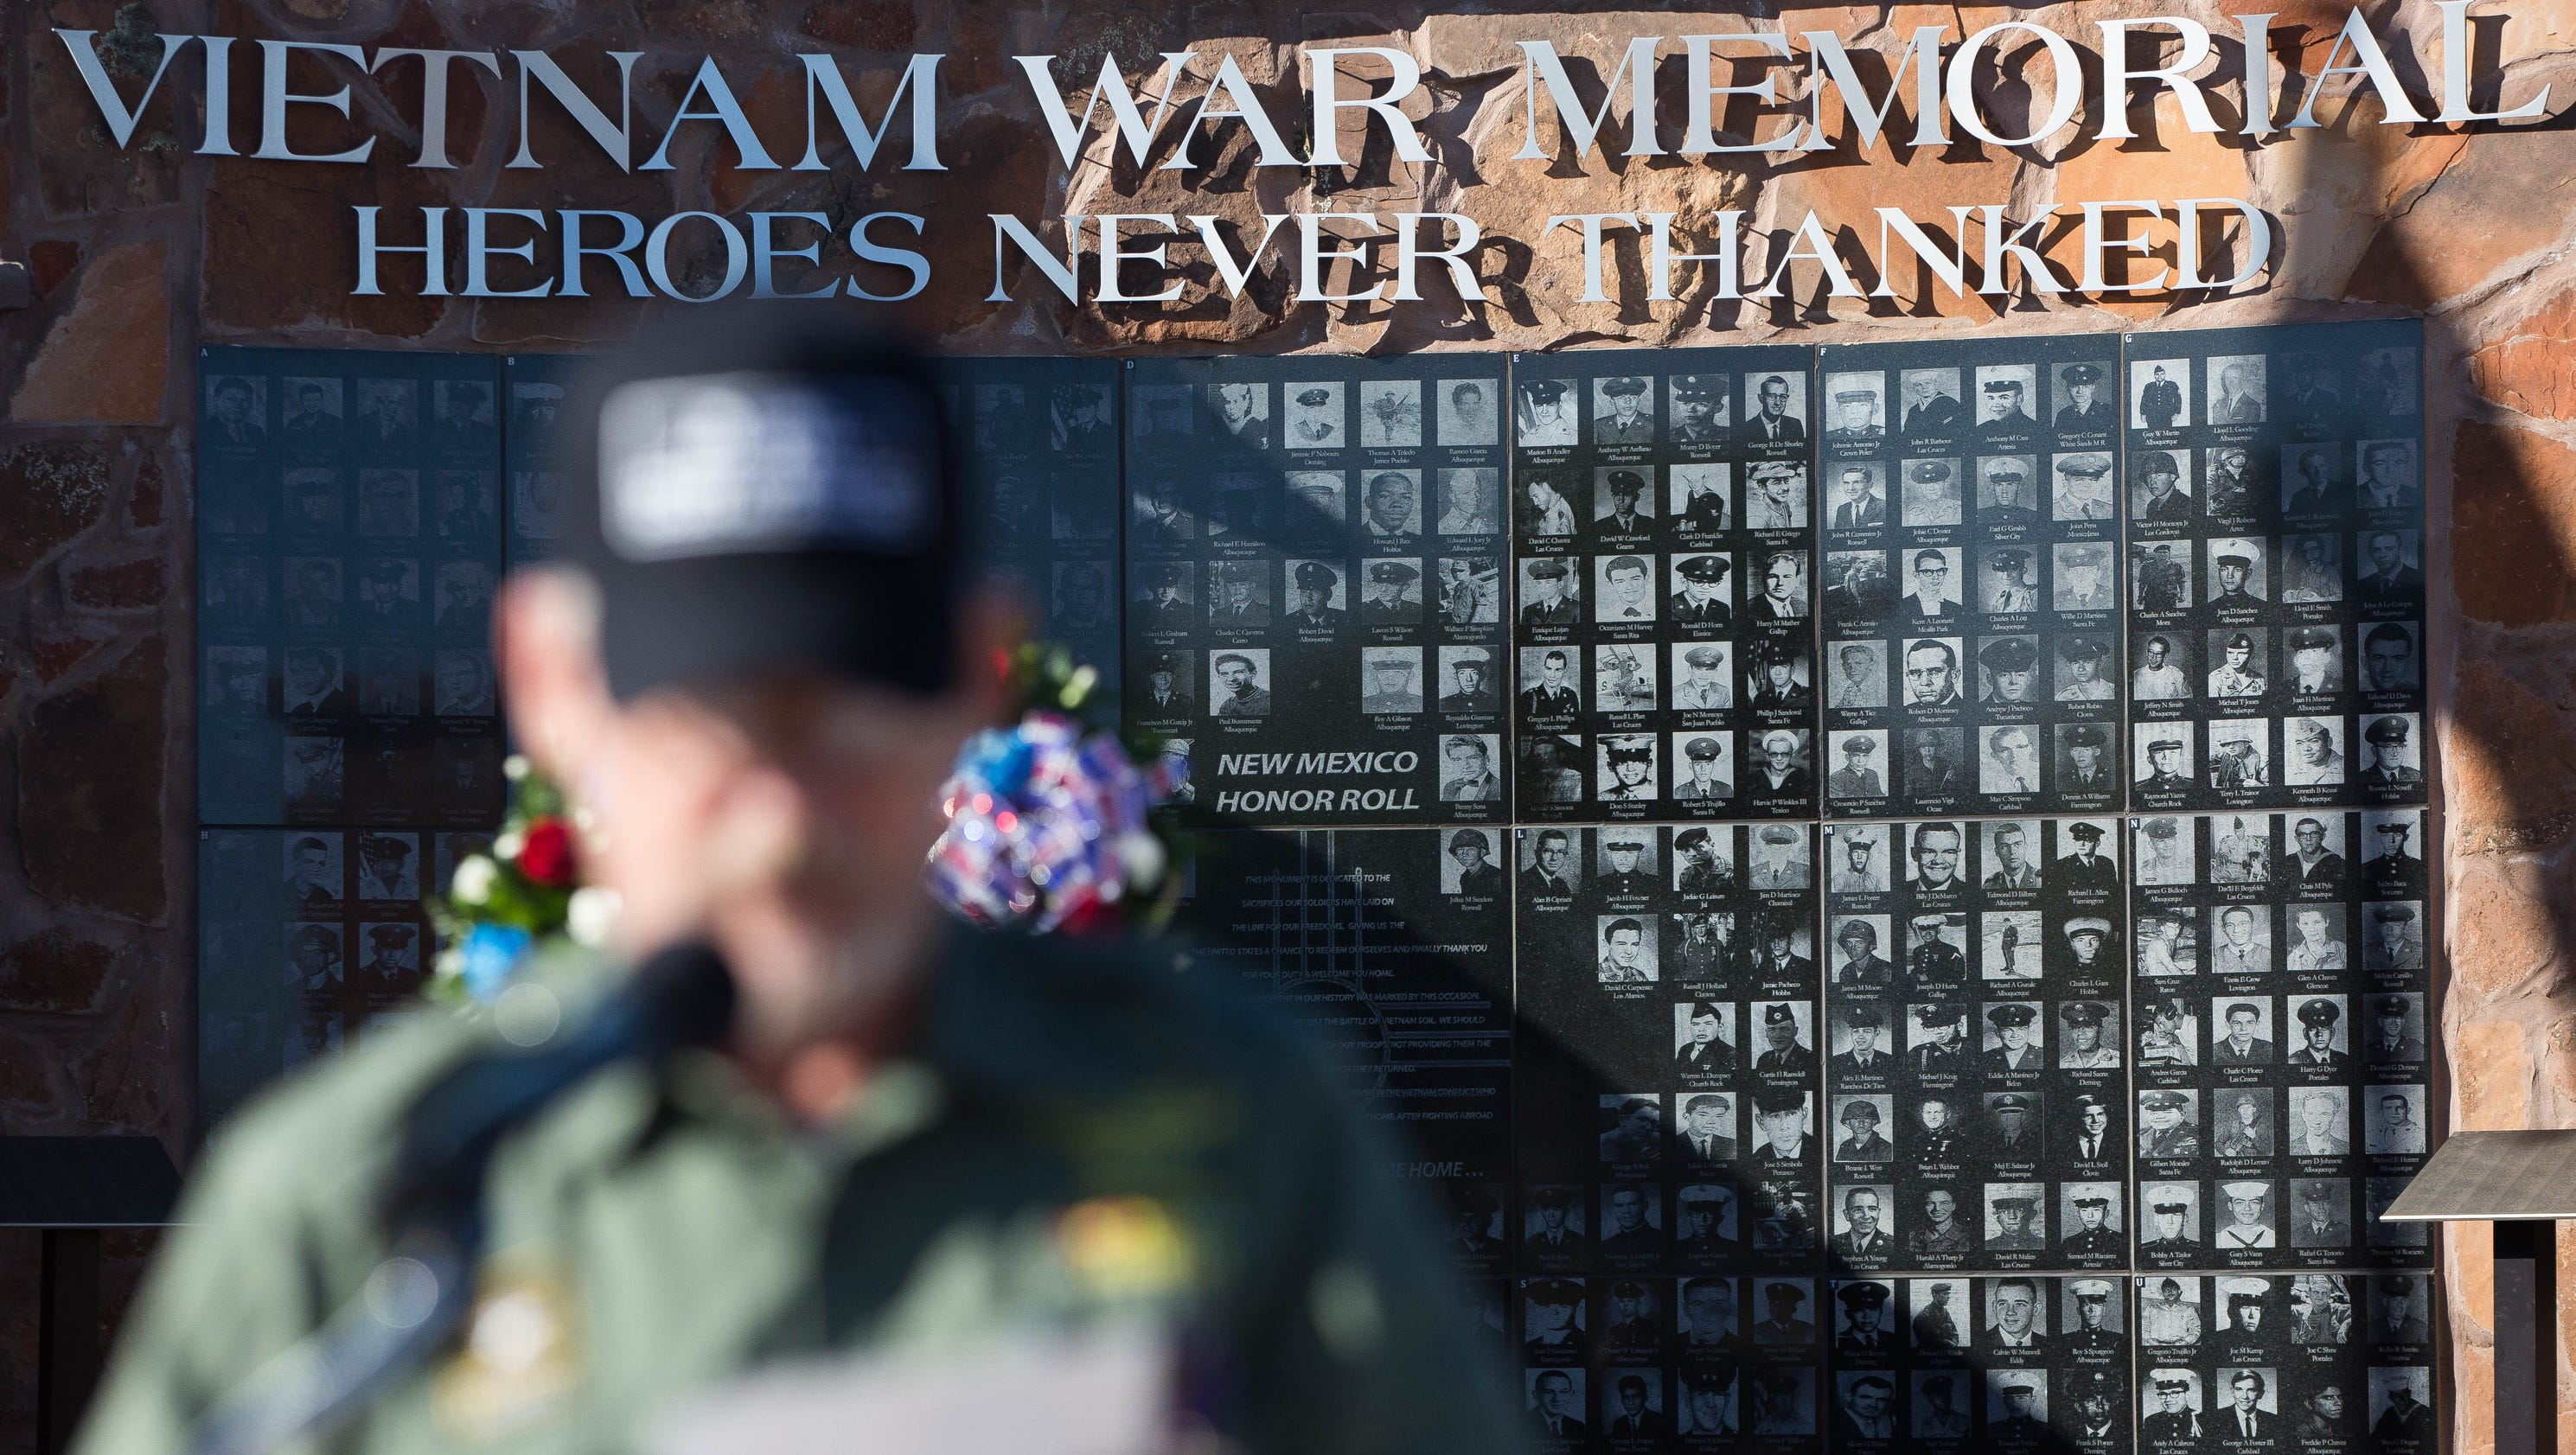 story welcome home vietnam veterans ceremony this weekend